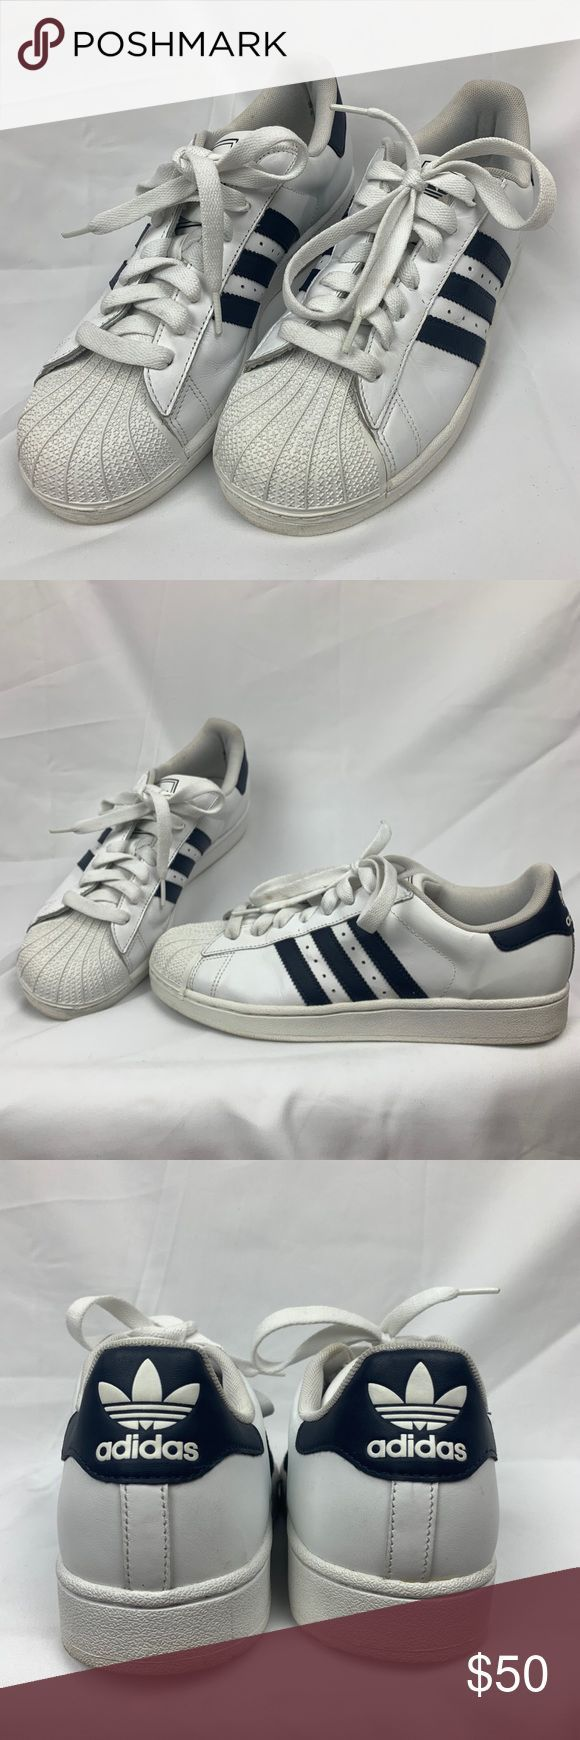 Adidas Low Top Sneakers Shoes Old School Adidas G17070 Size